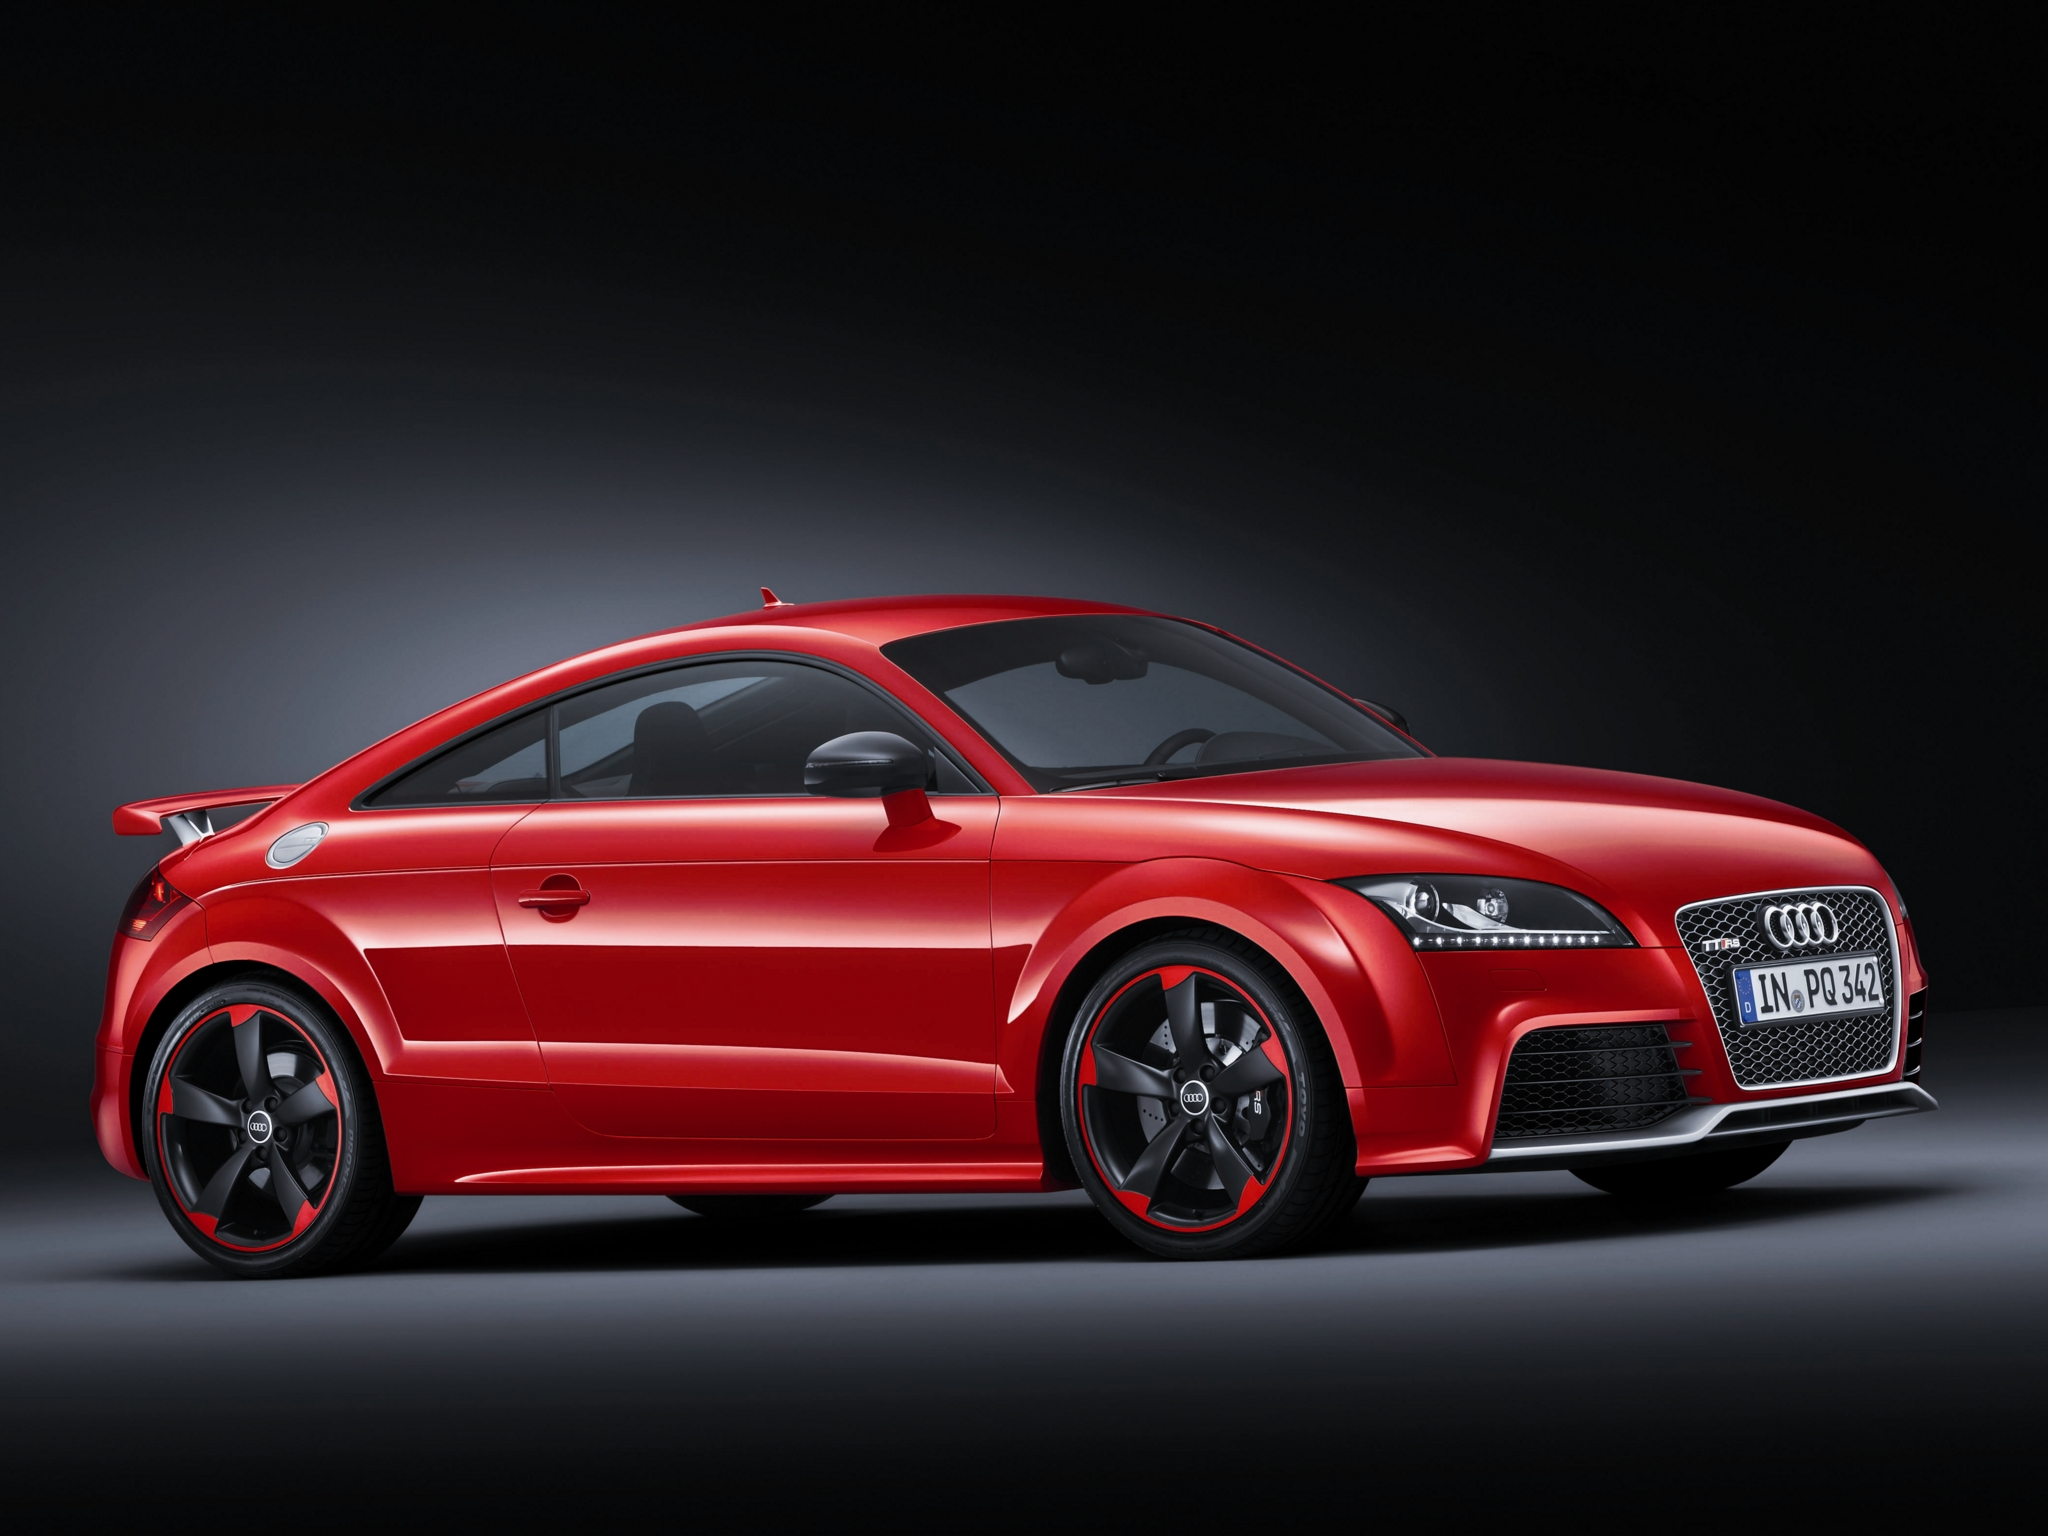 Audi Tt Rs Plus Coupe Wallpaper 4 Wallpapers - illinois-liver